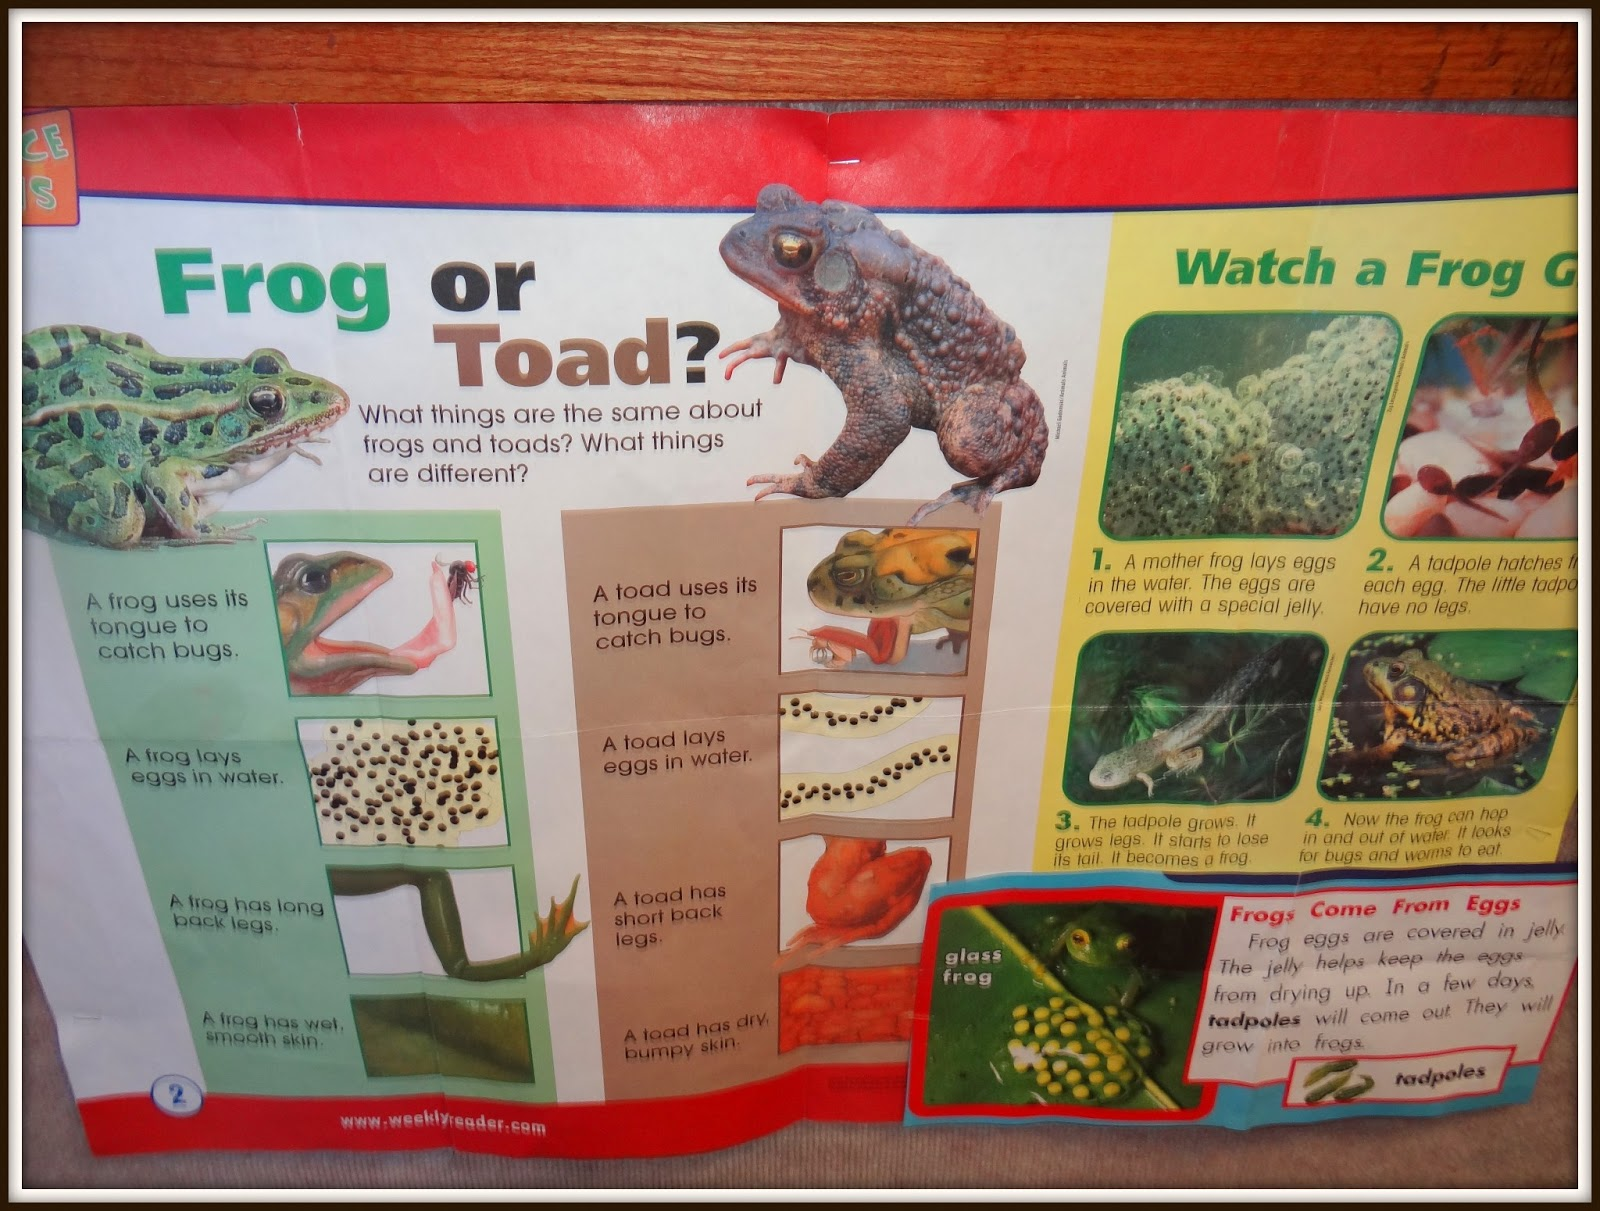 frog toad compare contrast essay Essayed verbiage essay on social media effect on journalism 4 p s of colgate essays on global warming essay for ias mains 2016 movies essay for ias mains 2016 movies.